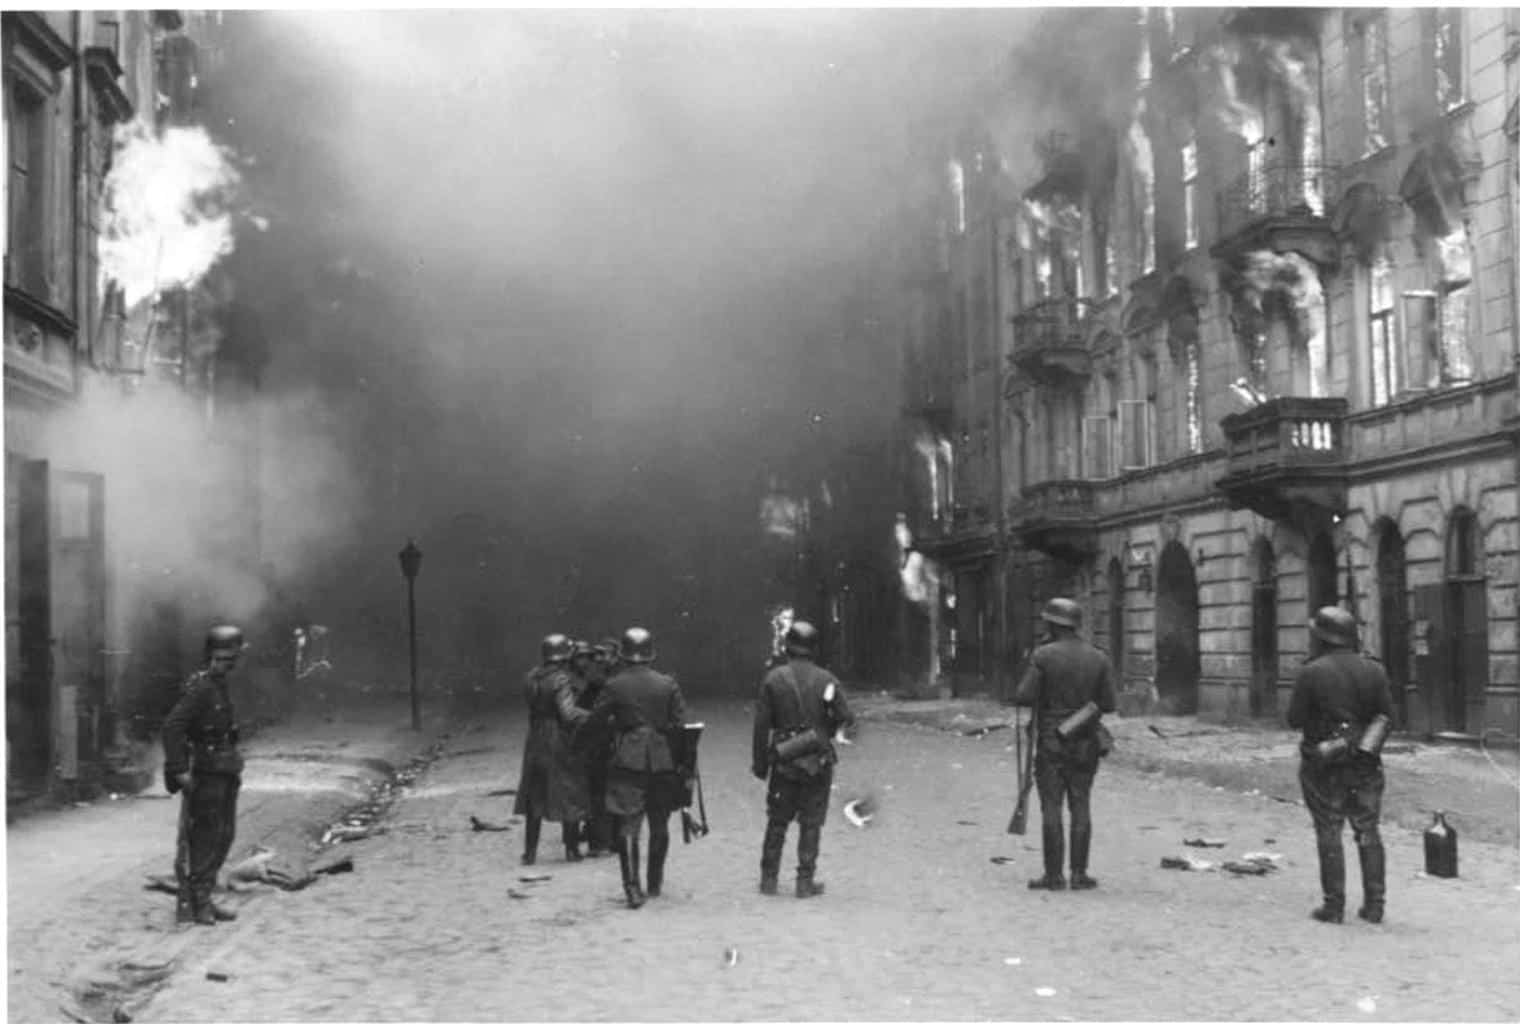 the-warsaw-ghetto-uprising-second-place-winner-of-memphis-jewish-federations-10th-annual-holocaust-essay-competition